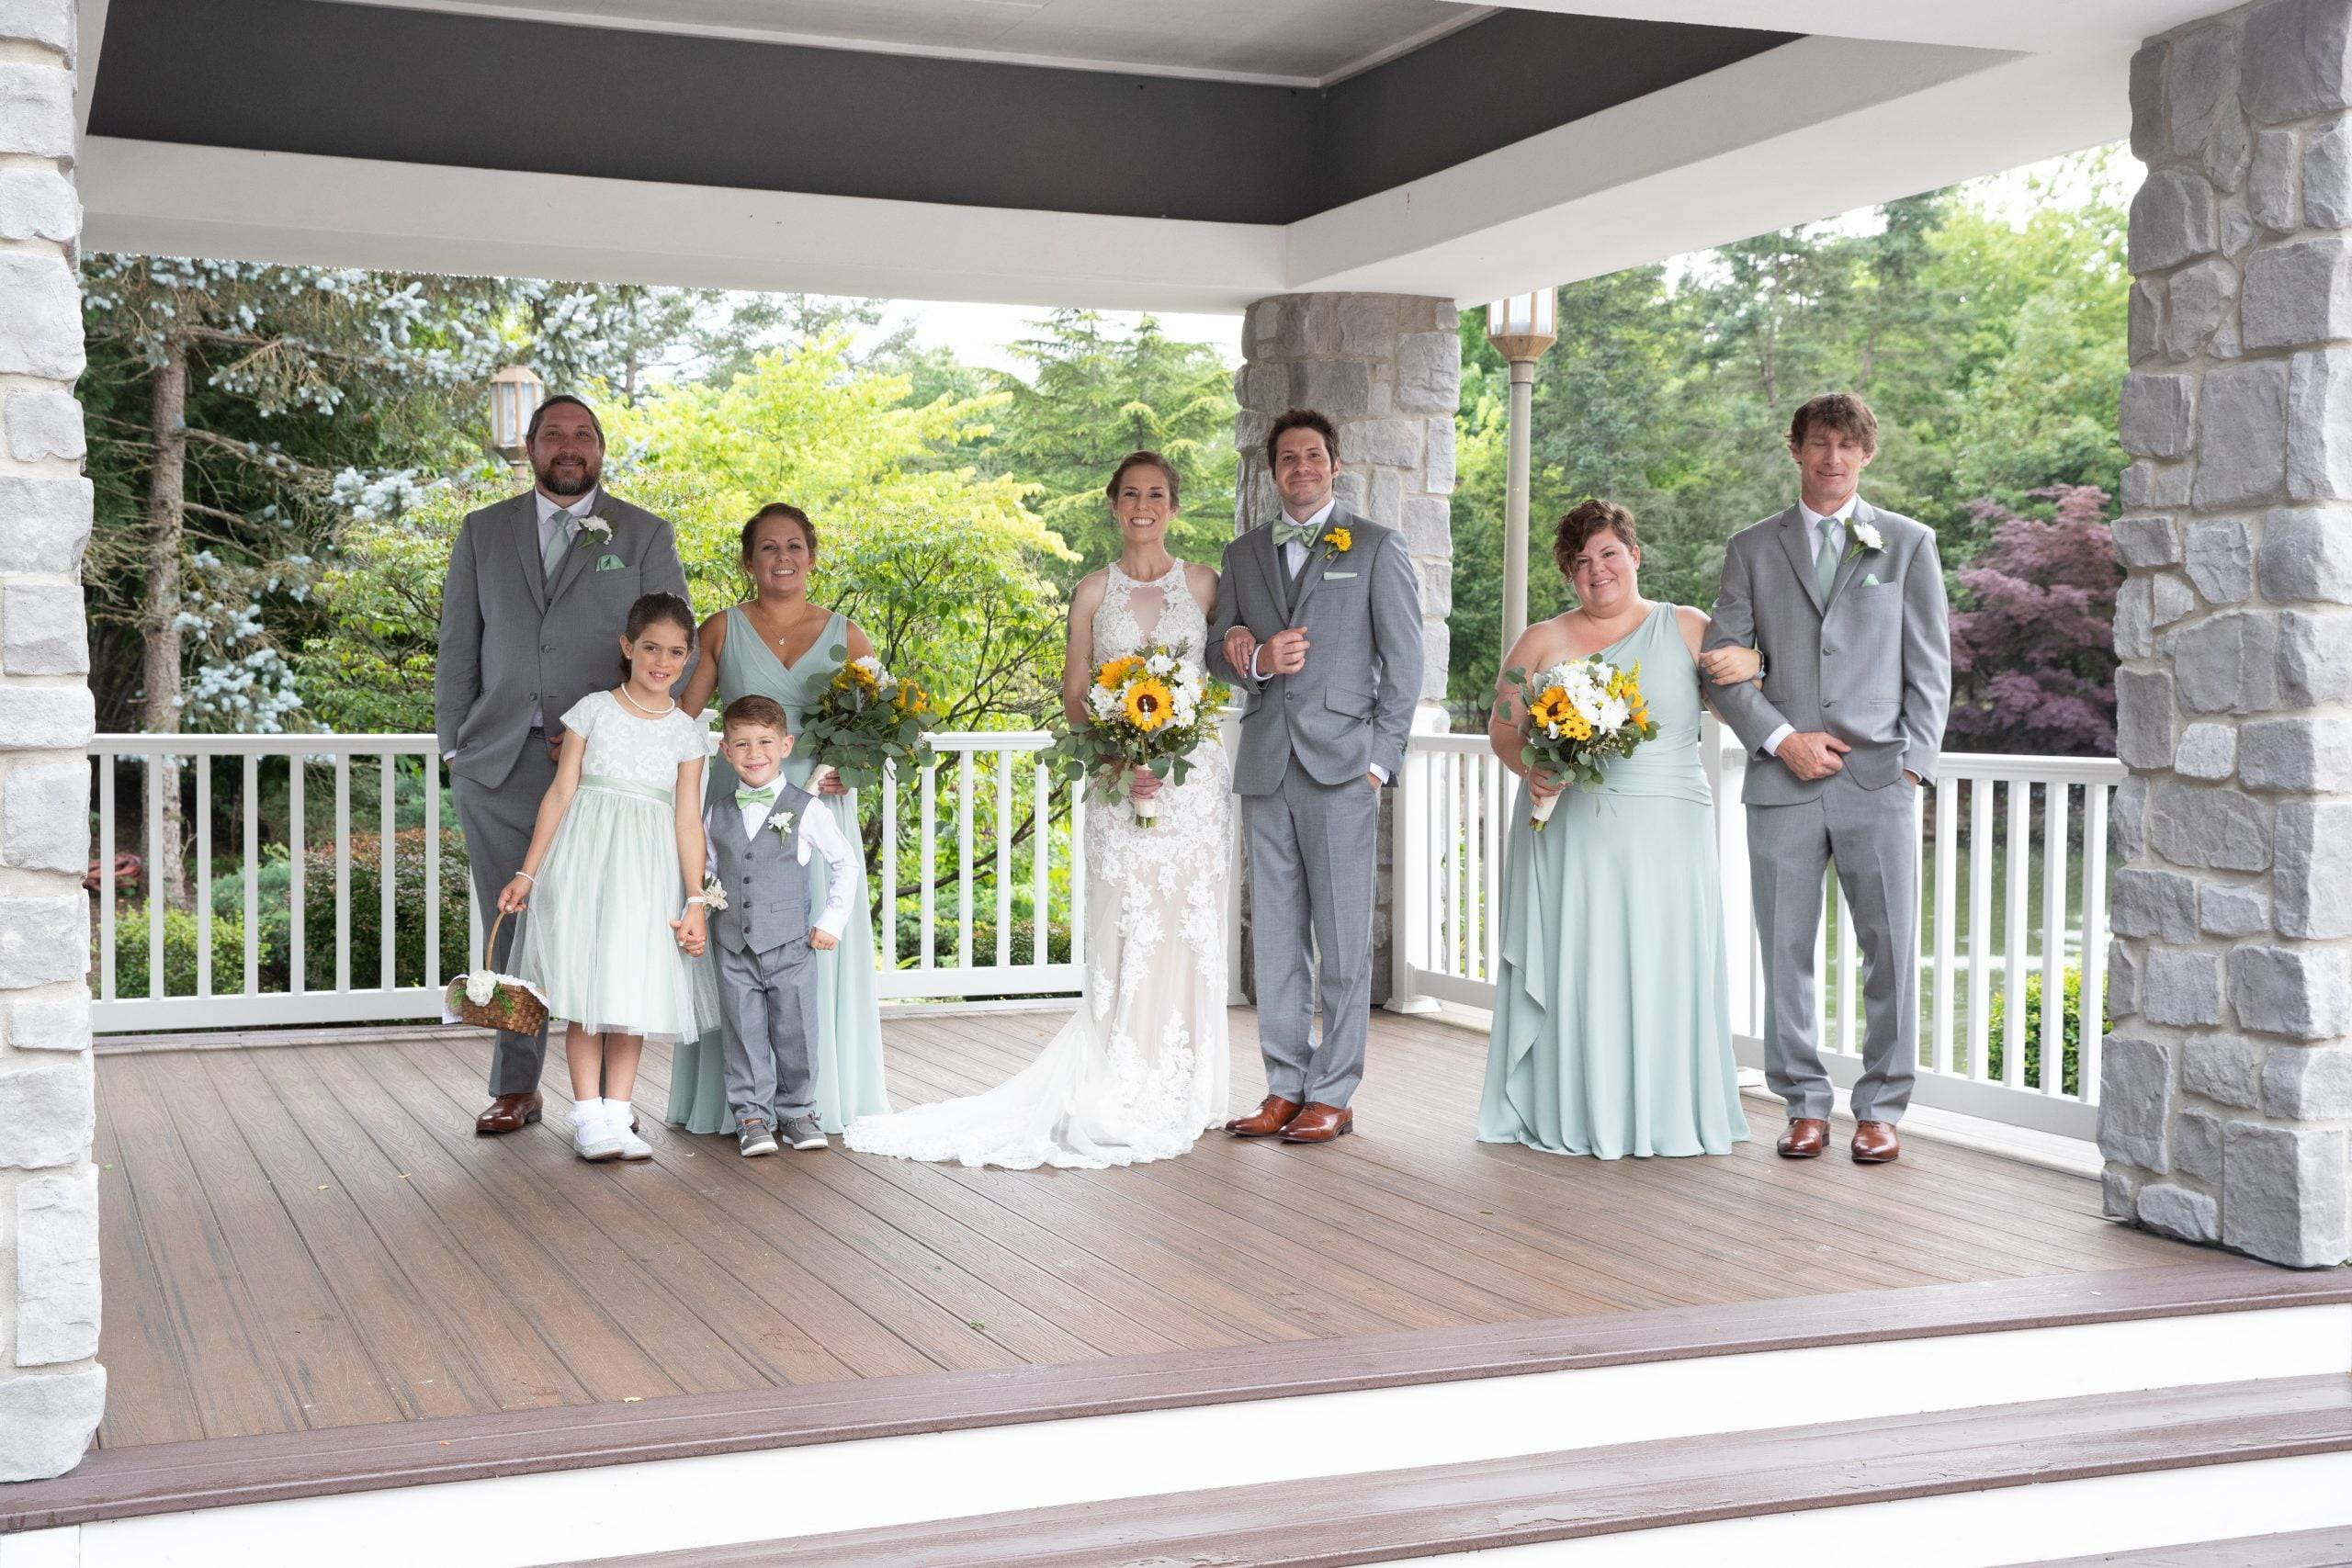 Bridgewater Manor wedding party on covered porch